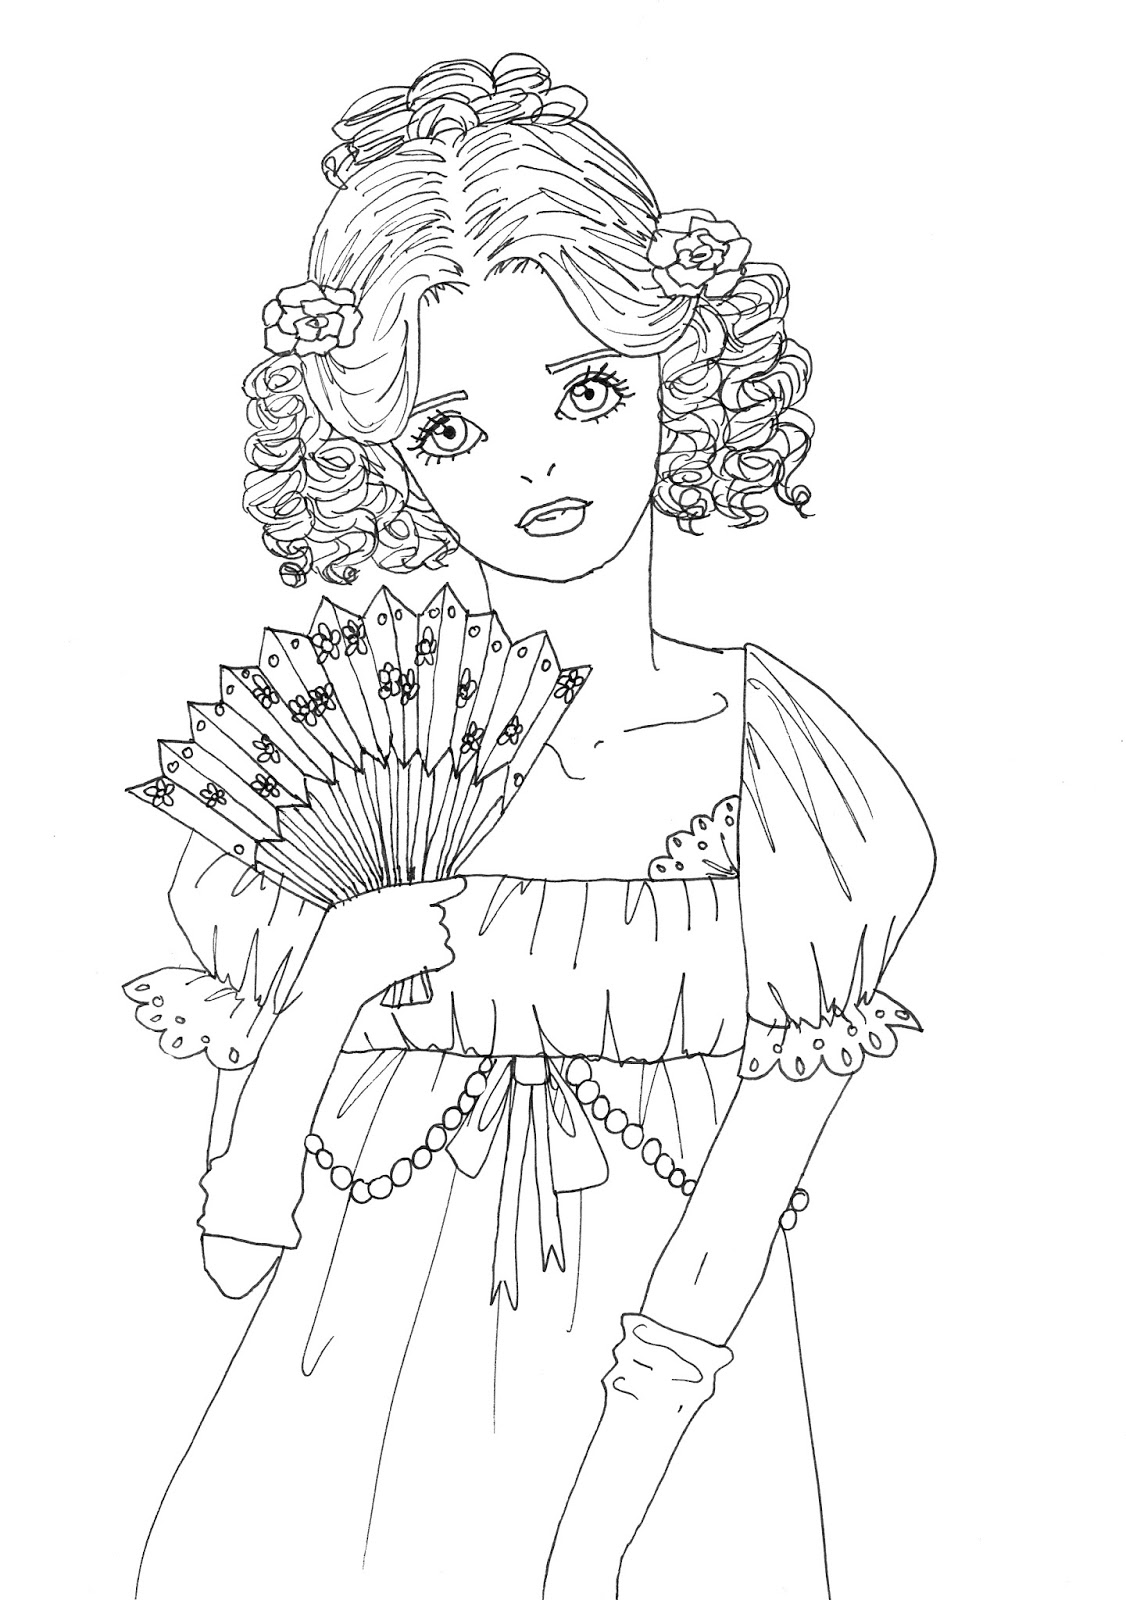 This Wonderful Colouring Book Has 100 Hand Drawn Fashion Illustrations That Will Surely Spark The Imagination Of Every Budding Fashionista Out There